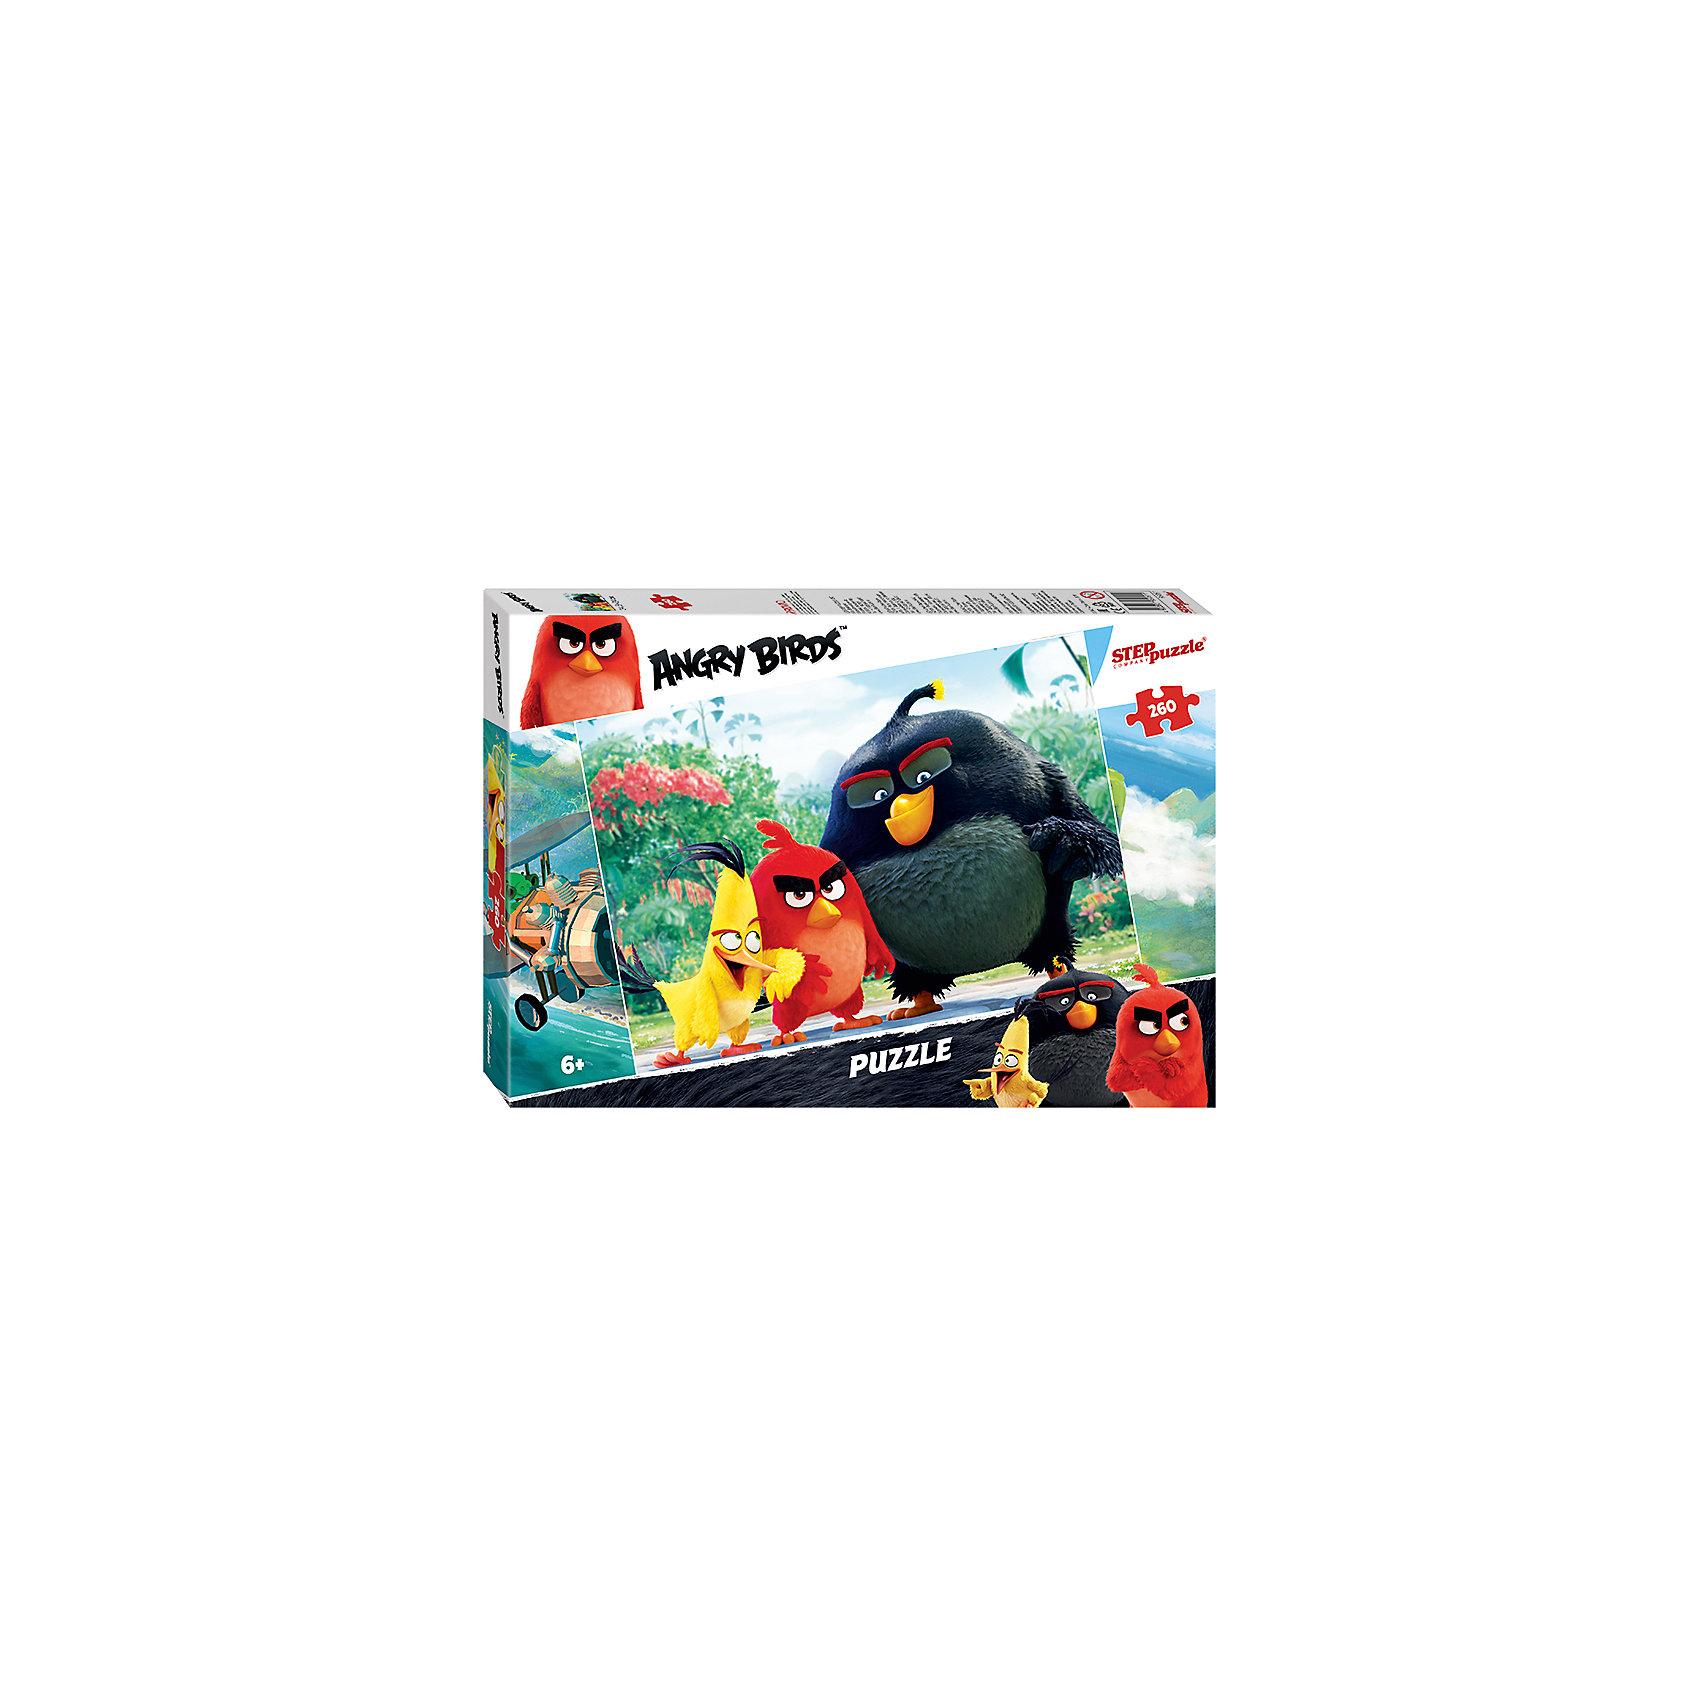 Степ Пазл Пазл Angry Birds, 260 деталей, Step Puzzle